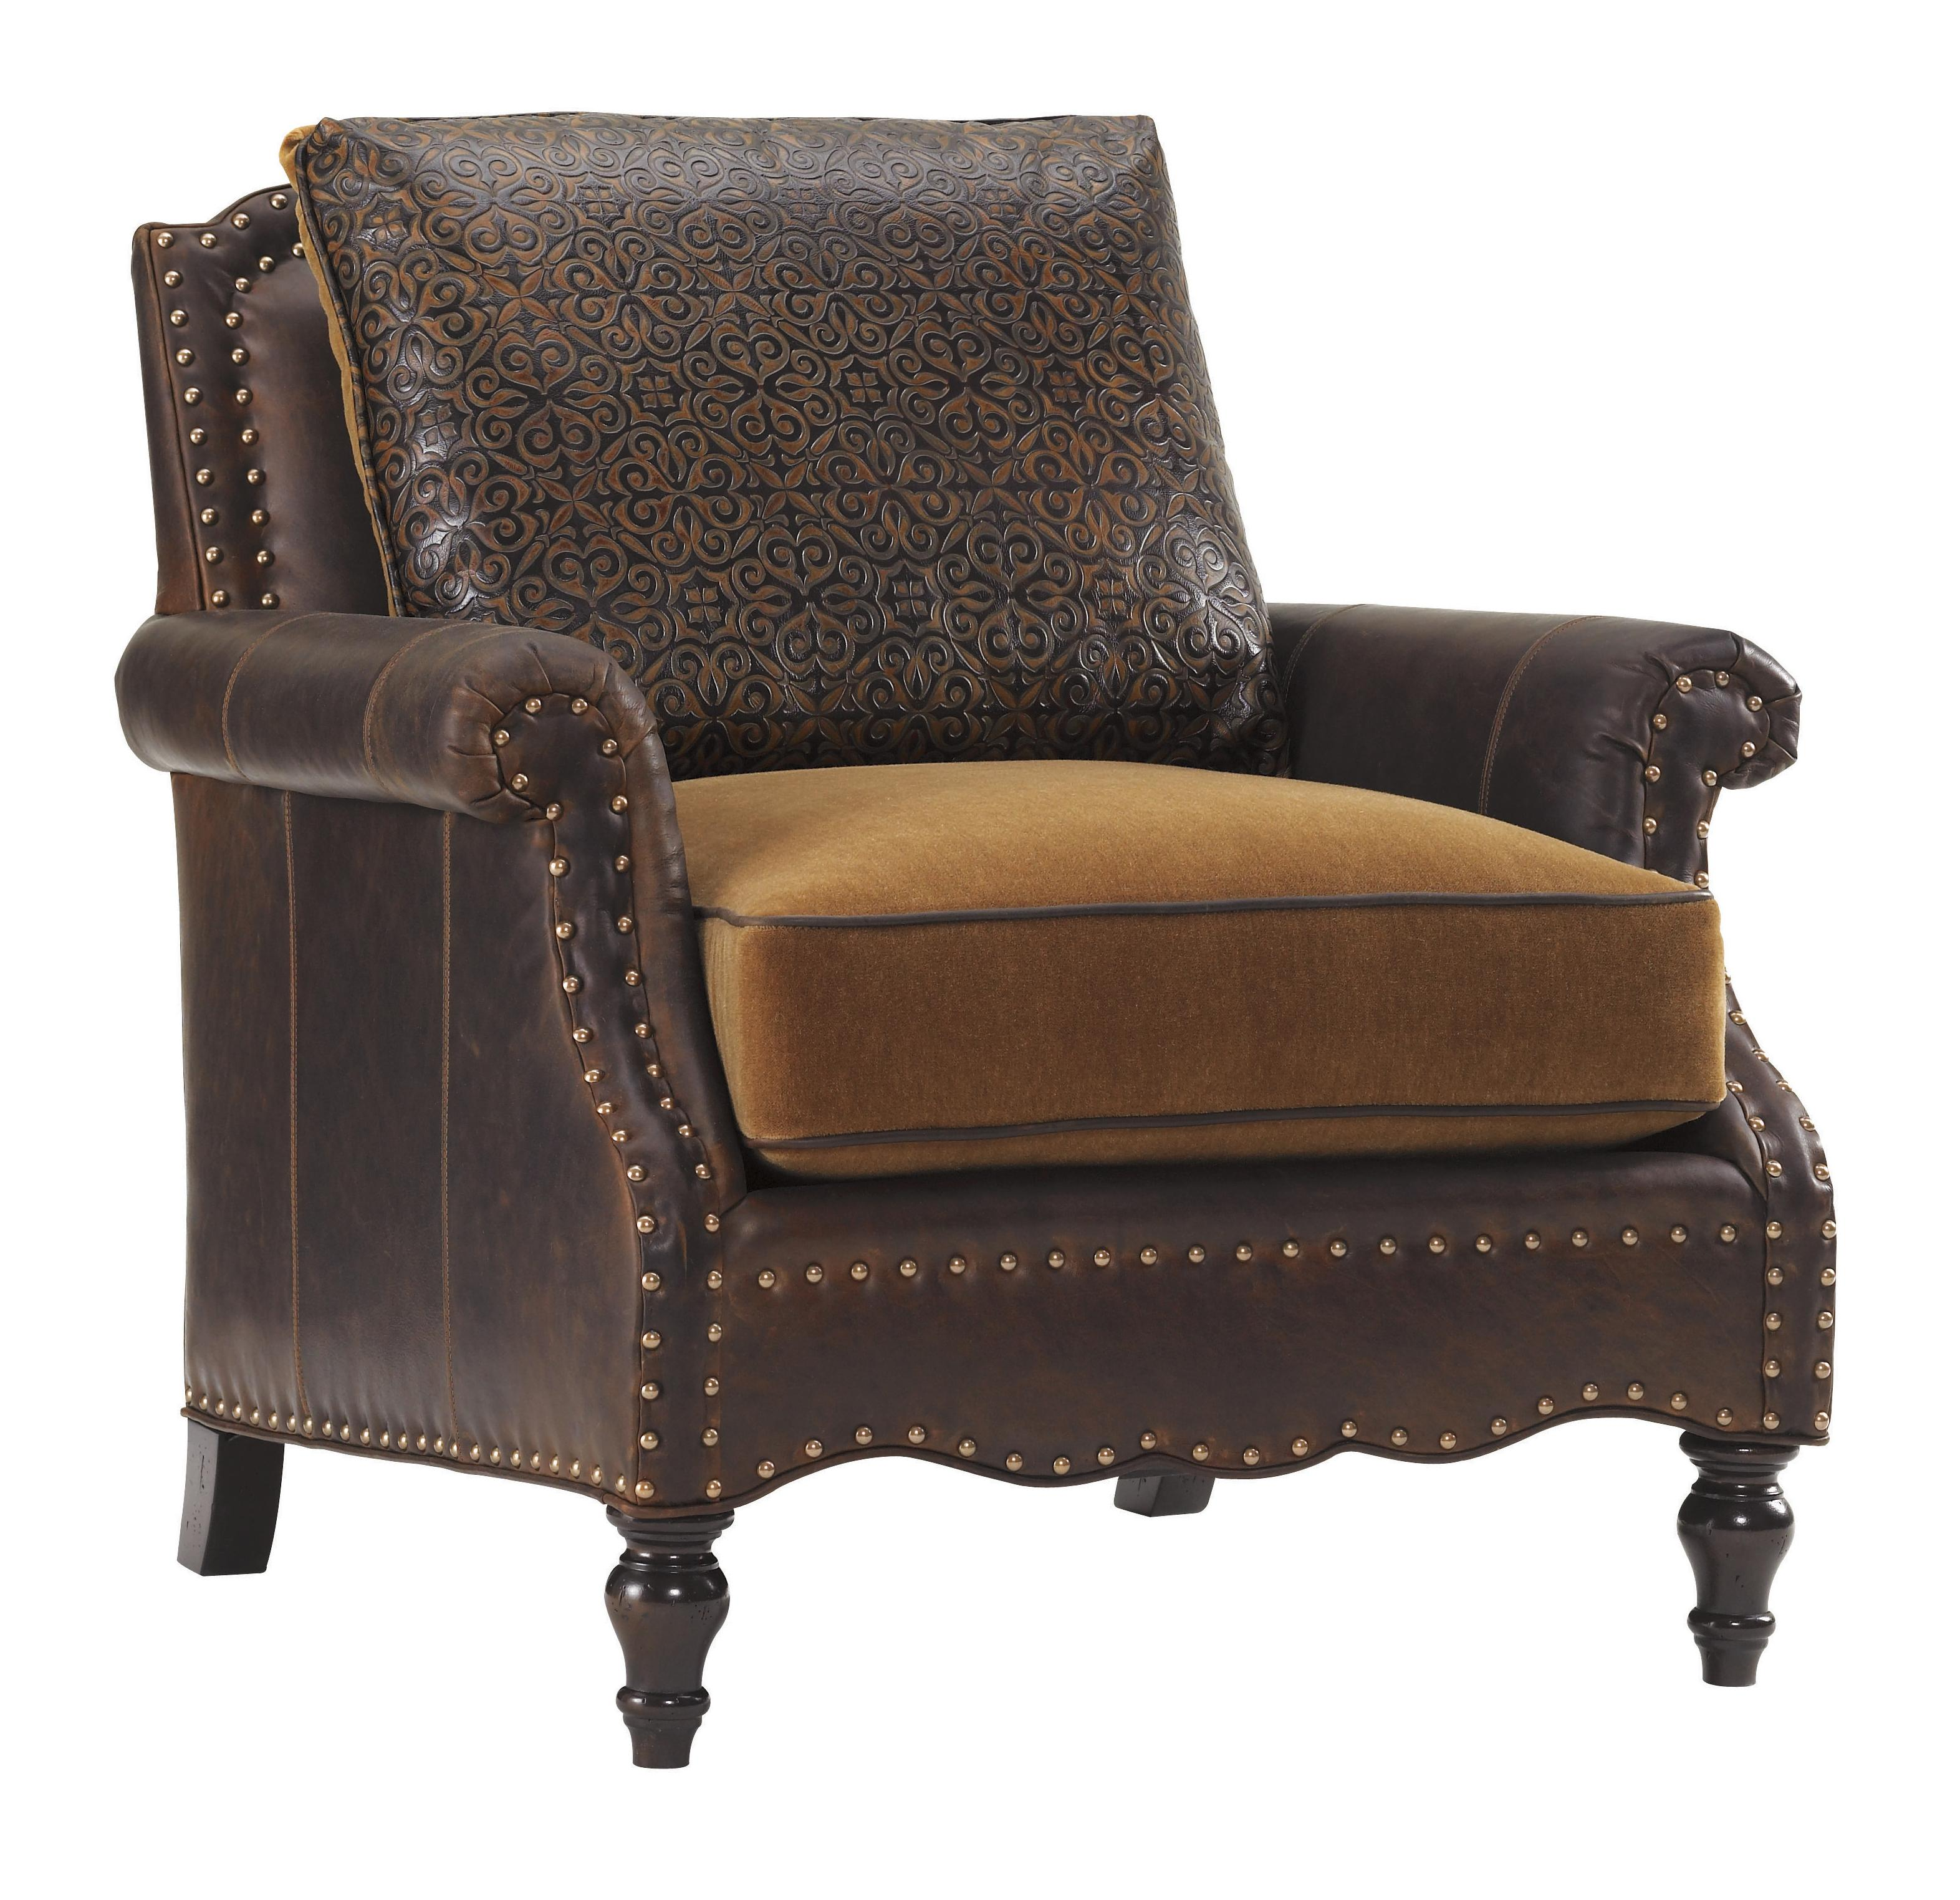 Tommy Bahama Home Tommy Bahama Upholstery Ll7884 11aa Belgrave Leather Chair With Brown Leather Upholstery And Decorative Nailheads Baer S Furniture Upholstered Chairs